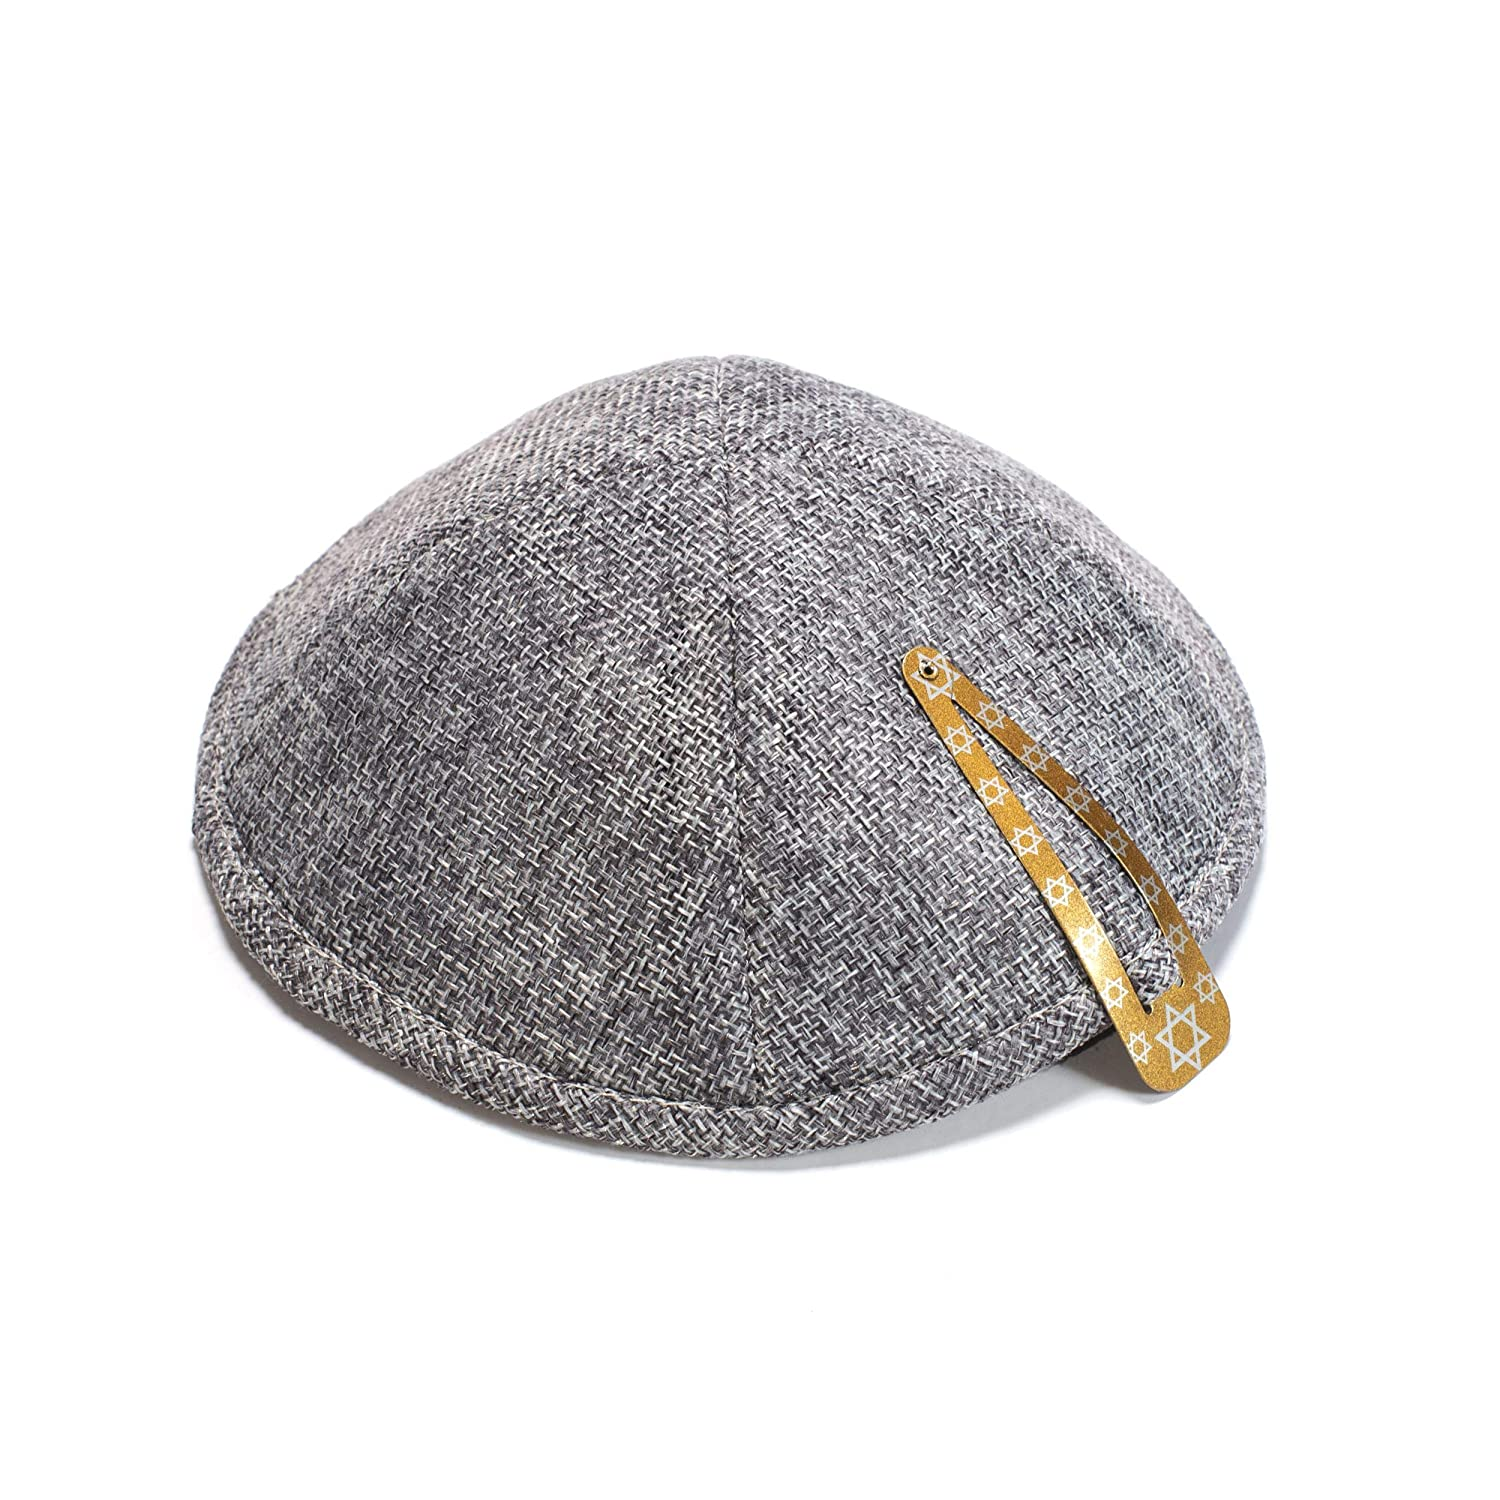 Art Judaica Linen Kippah with Pin Spot and Rim 19 Centimeters